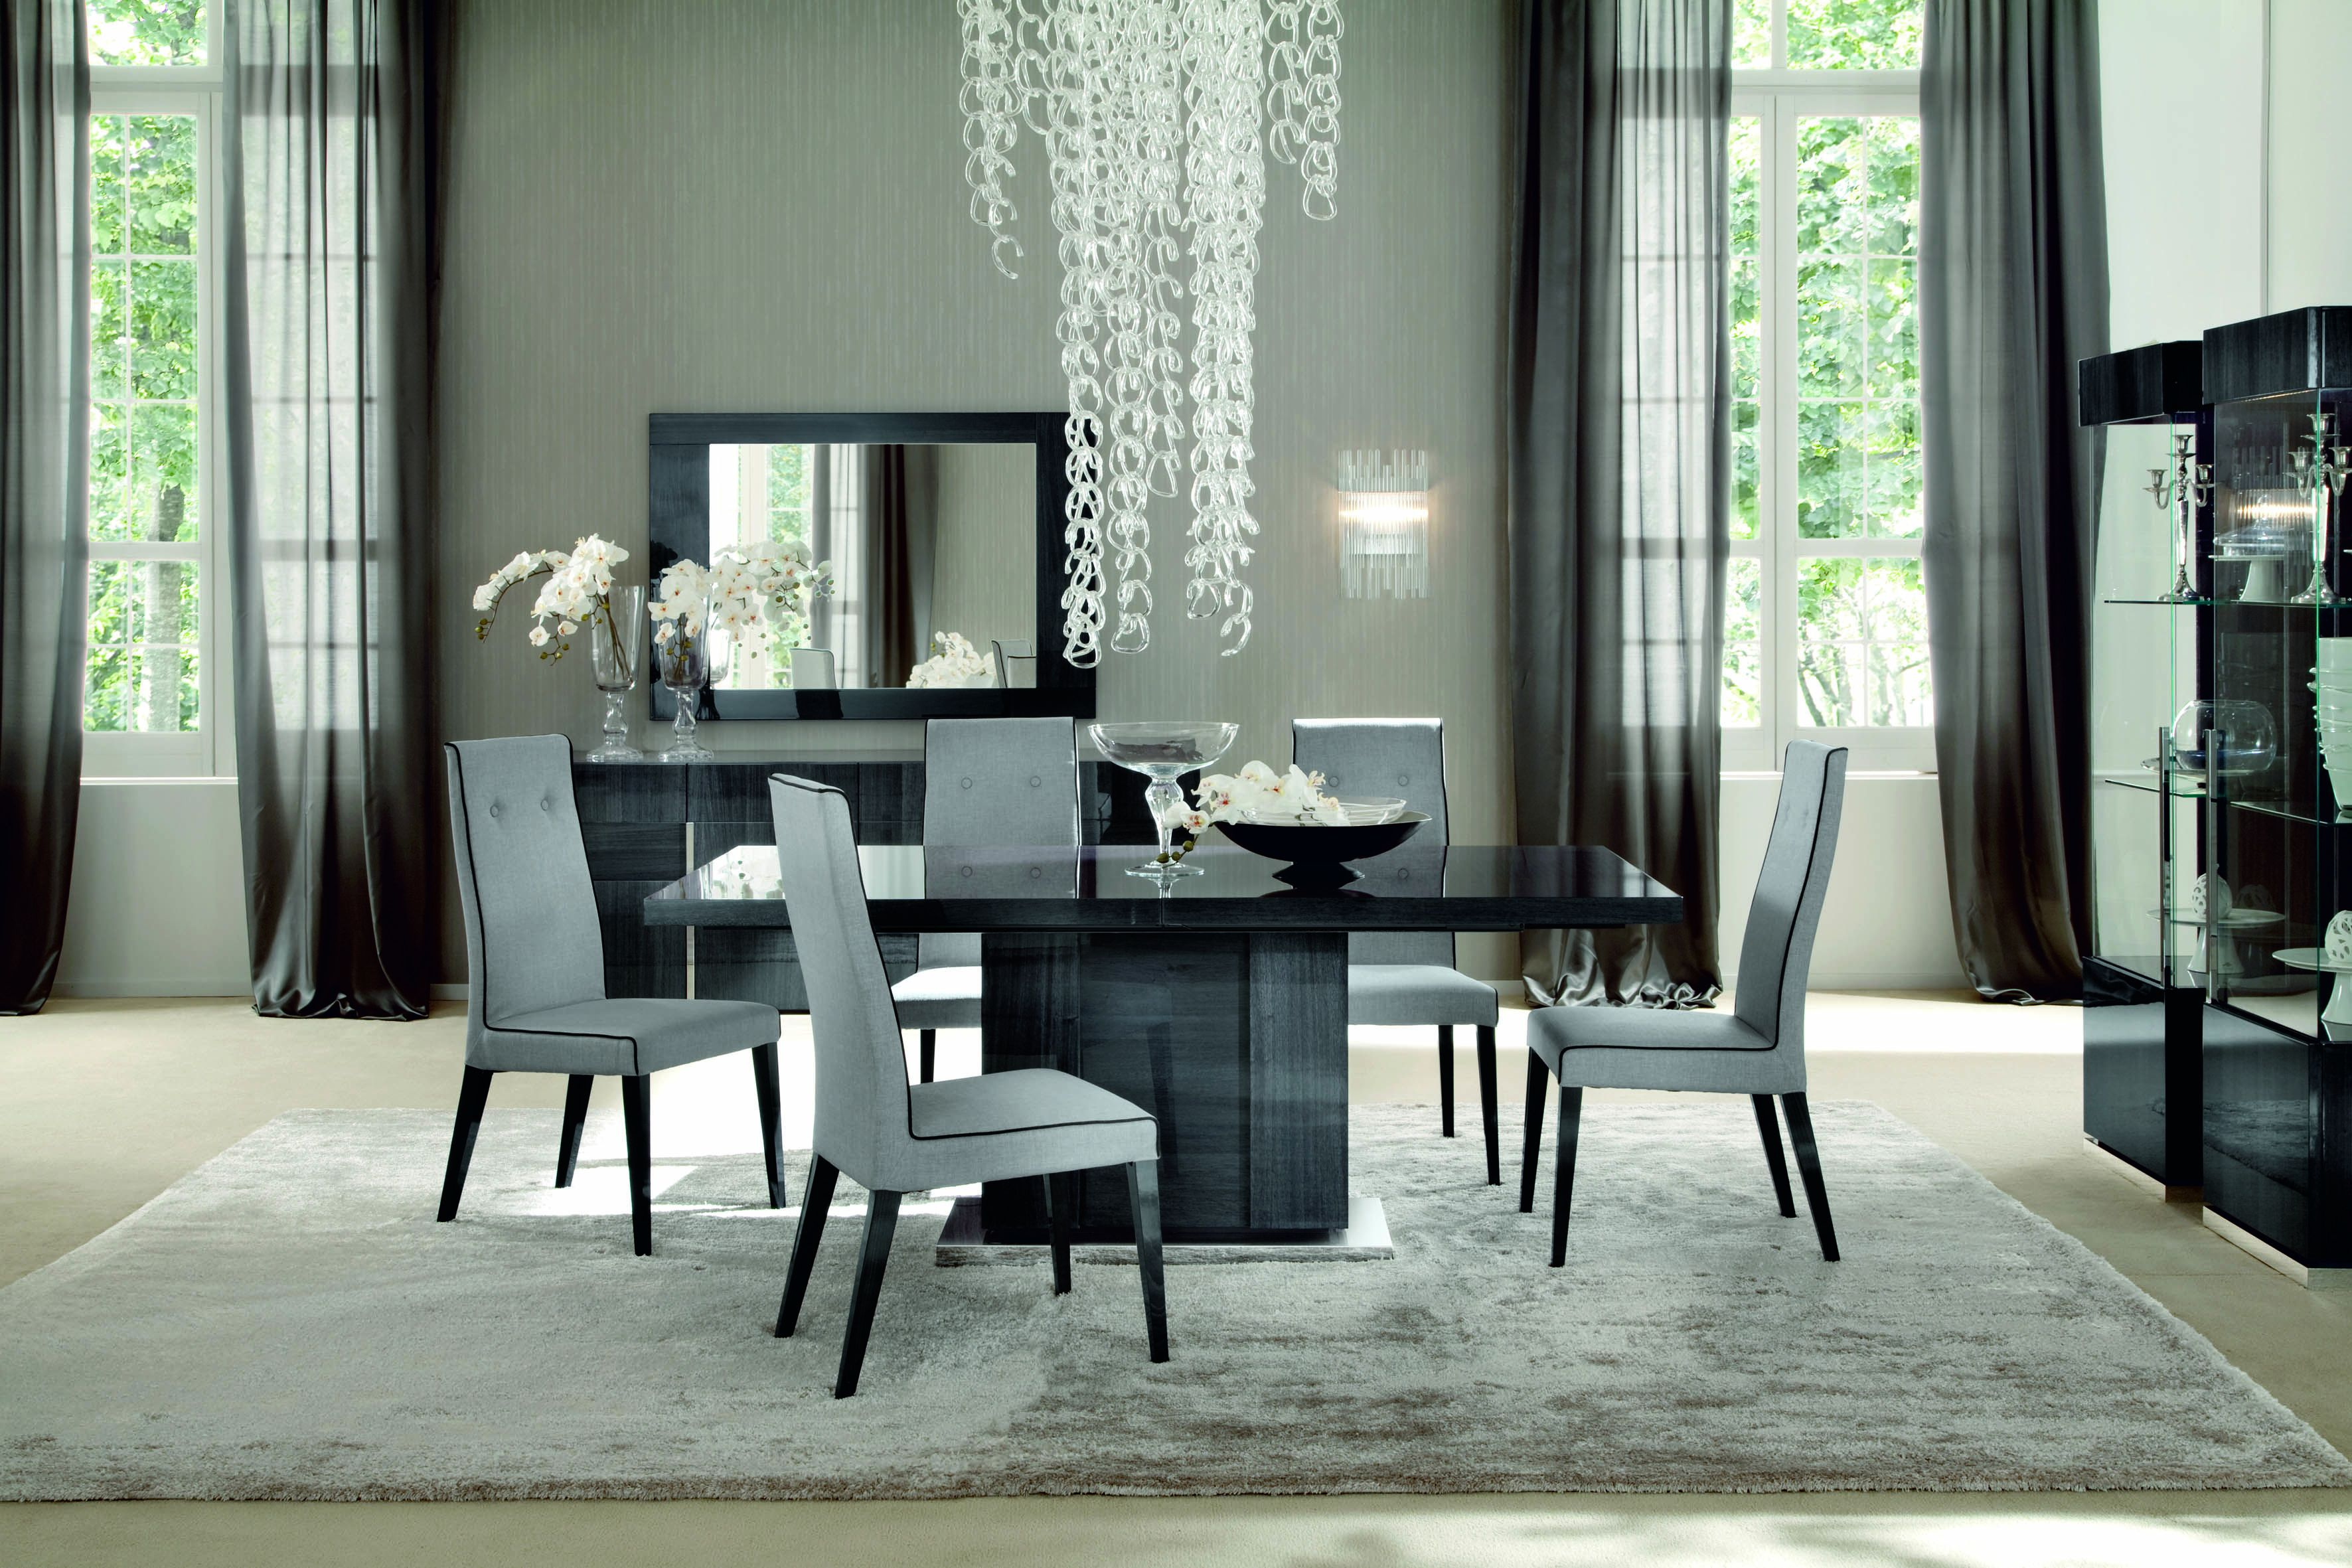 Montecarlo Dining Table and 4 Chairs